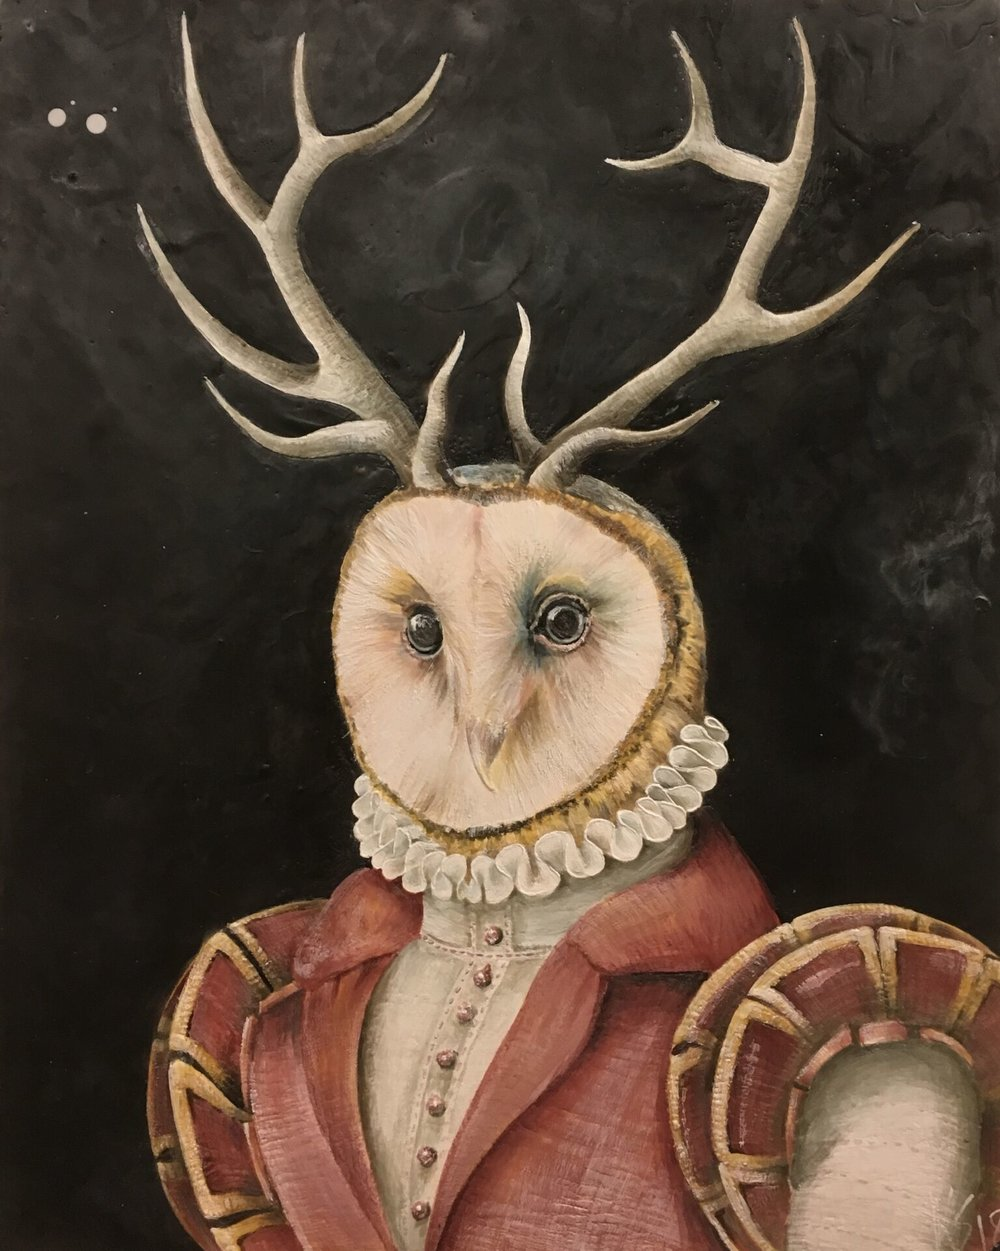 How Now Wise Owl 2018 24x30 SOLD